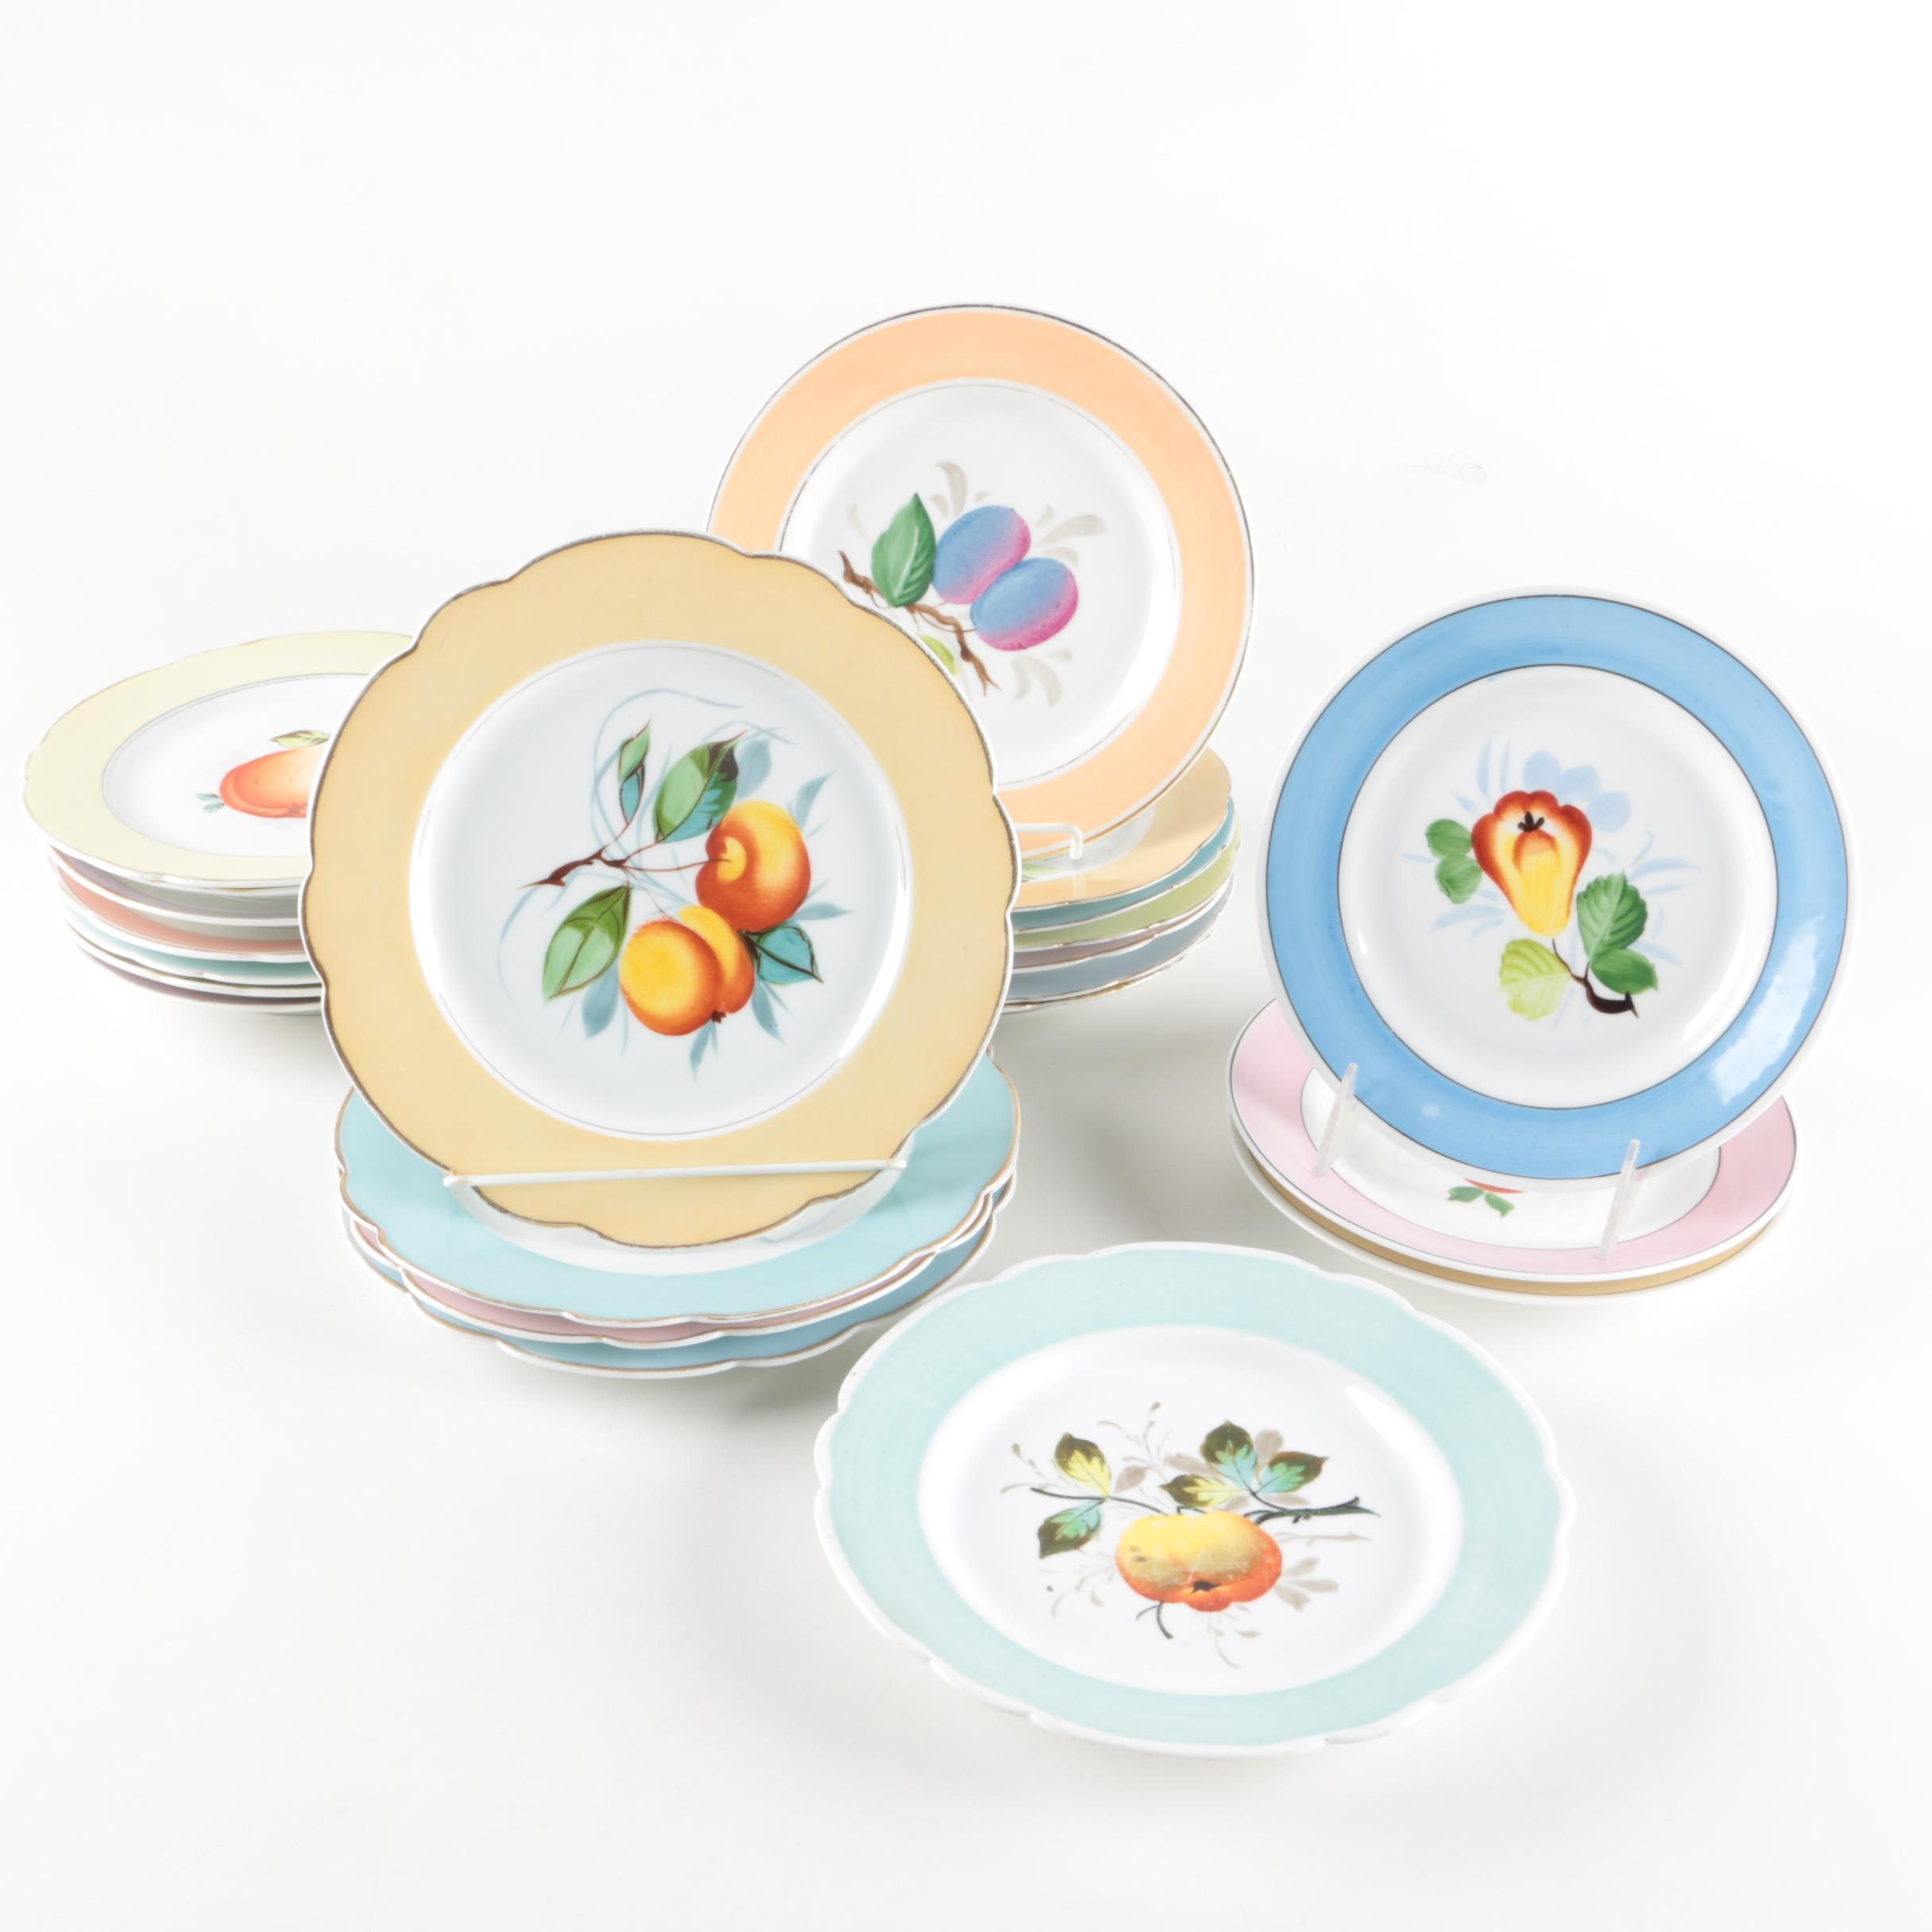 Fruit Themed Porcelain Plates